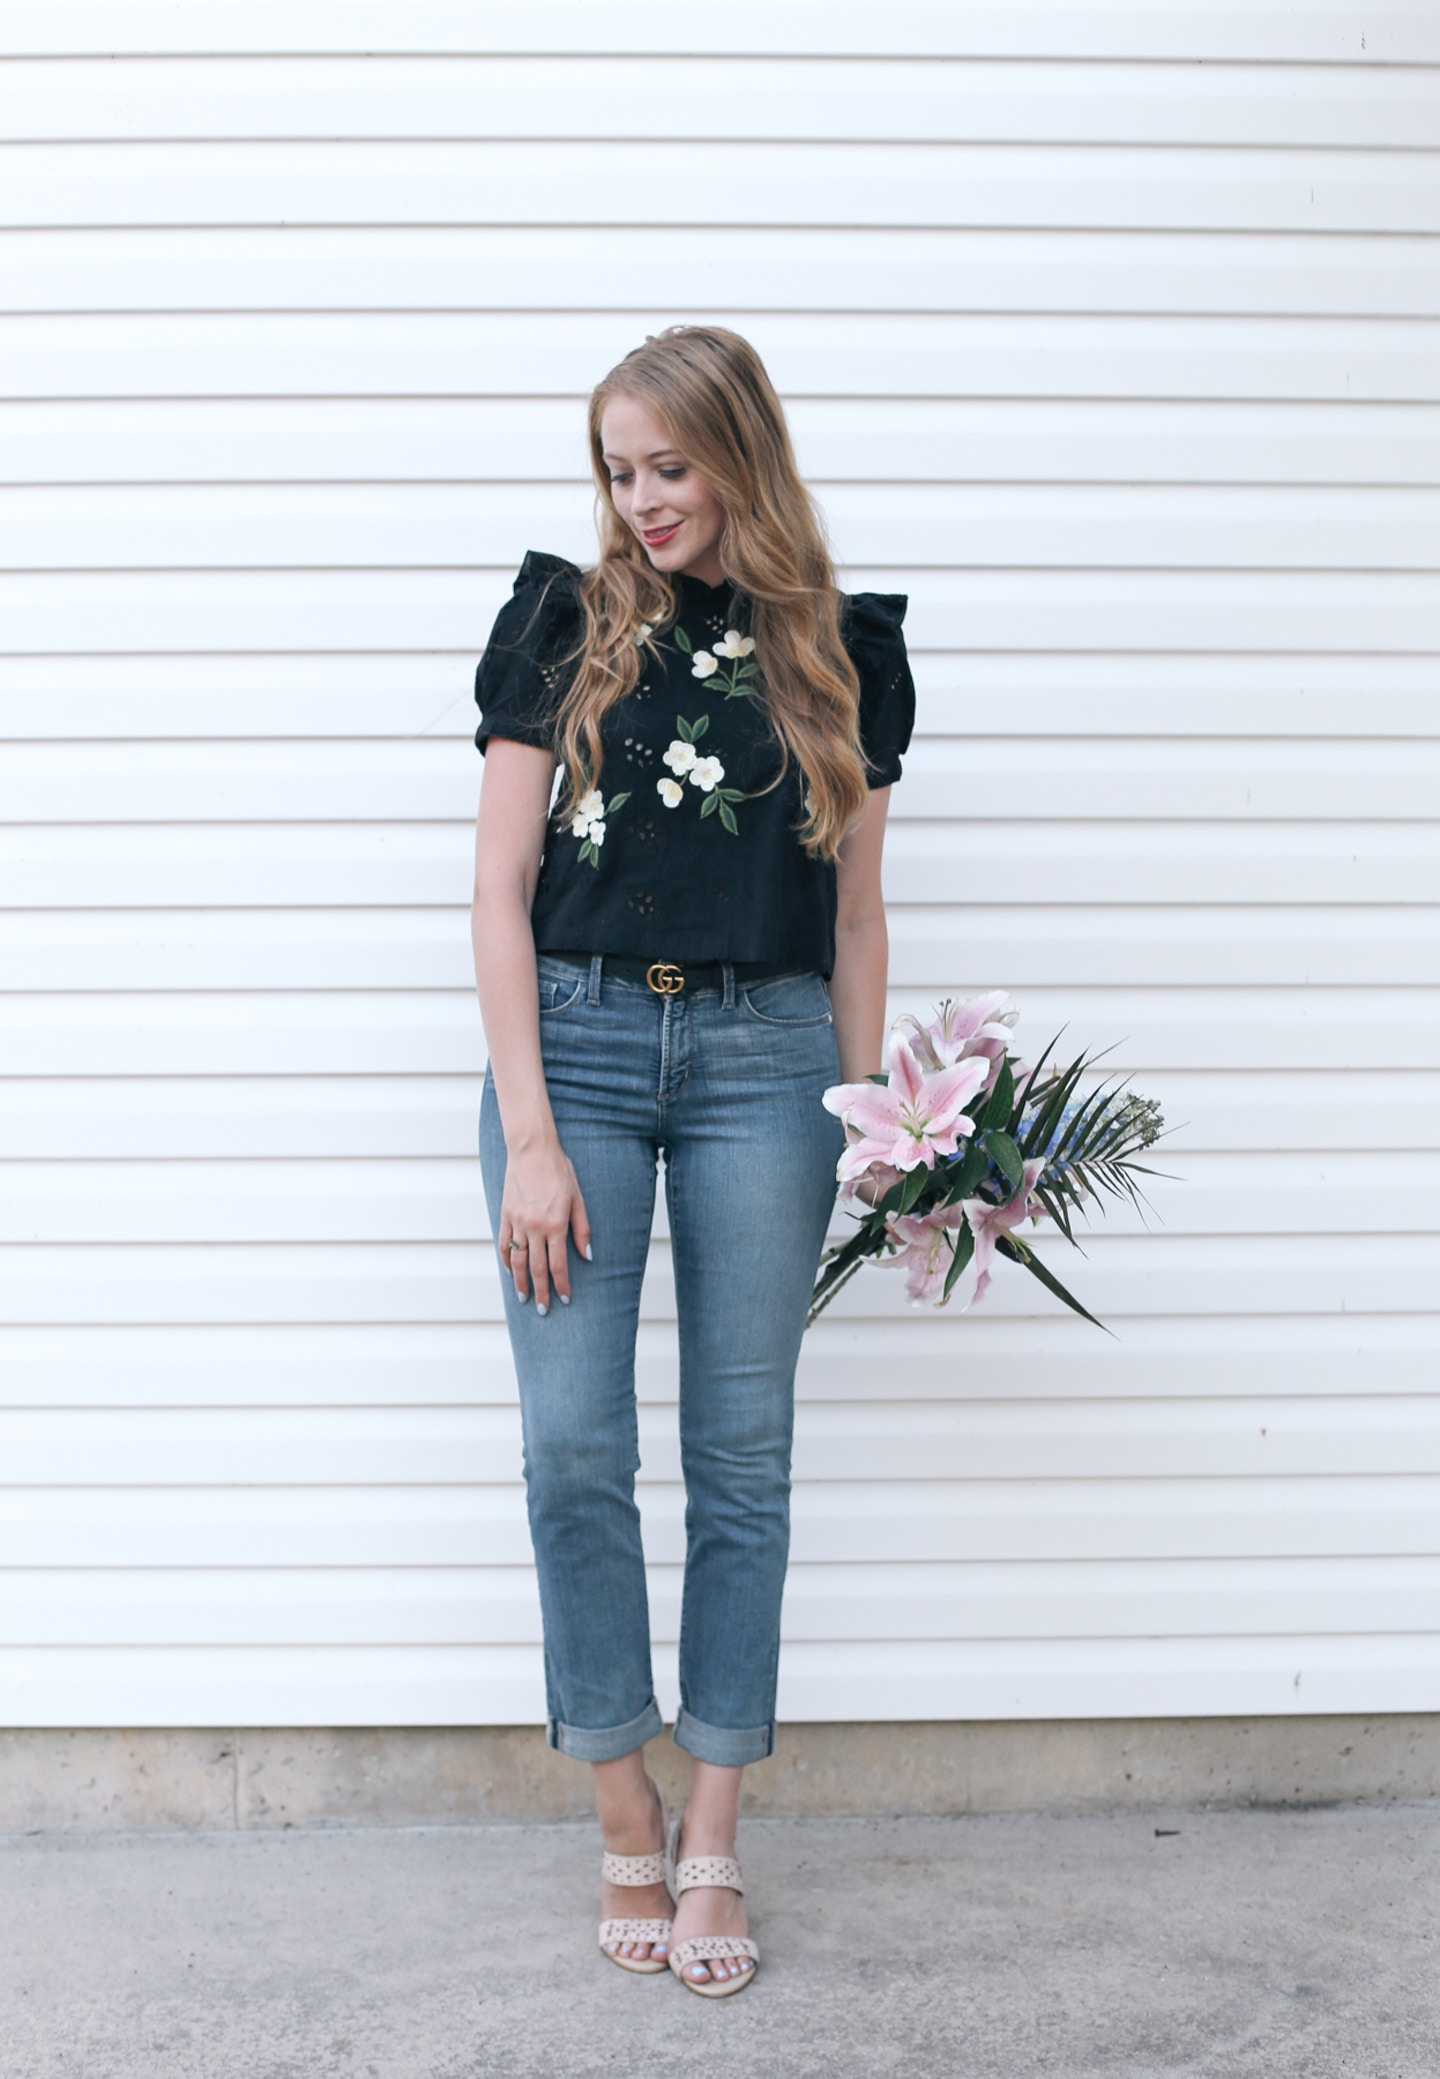 How to Look One Size Smaller in Jeans